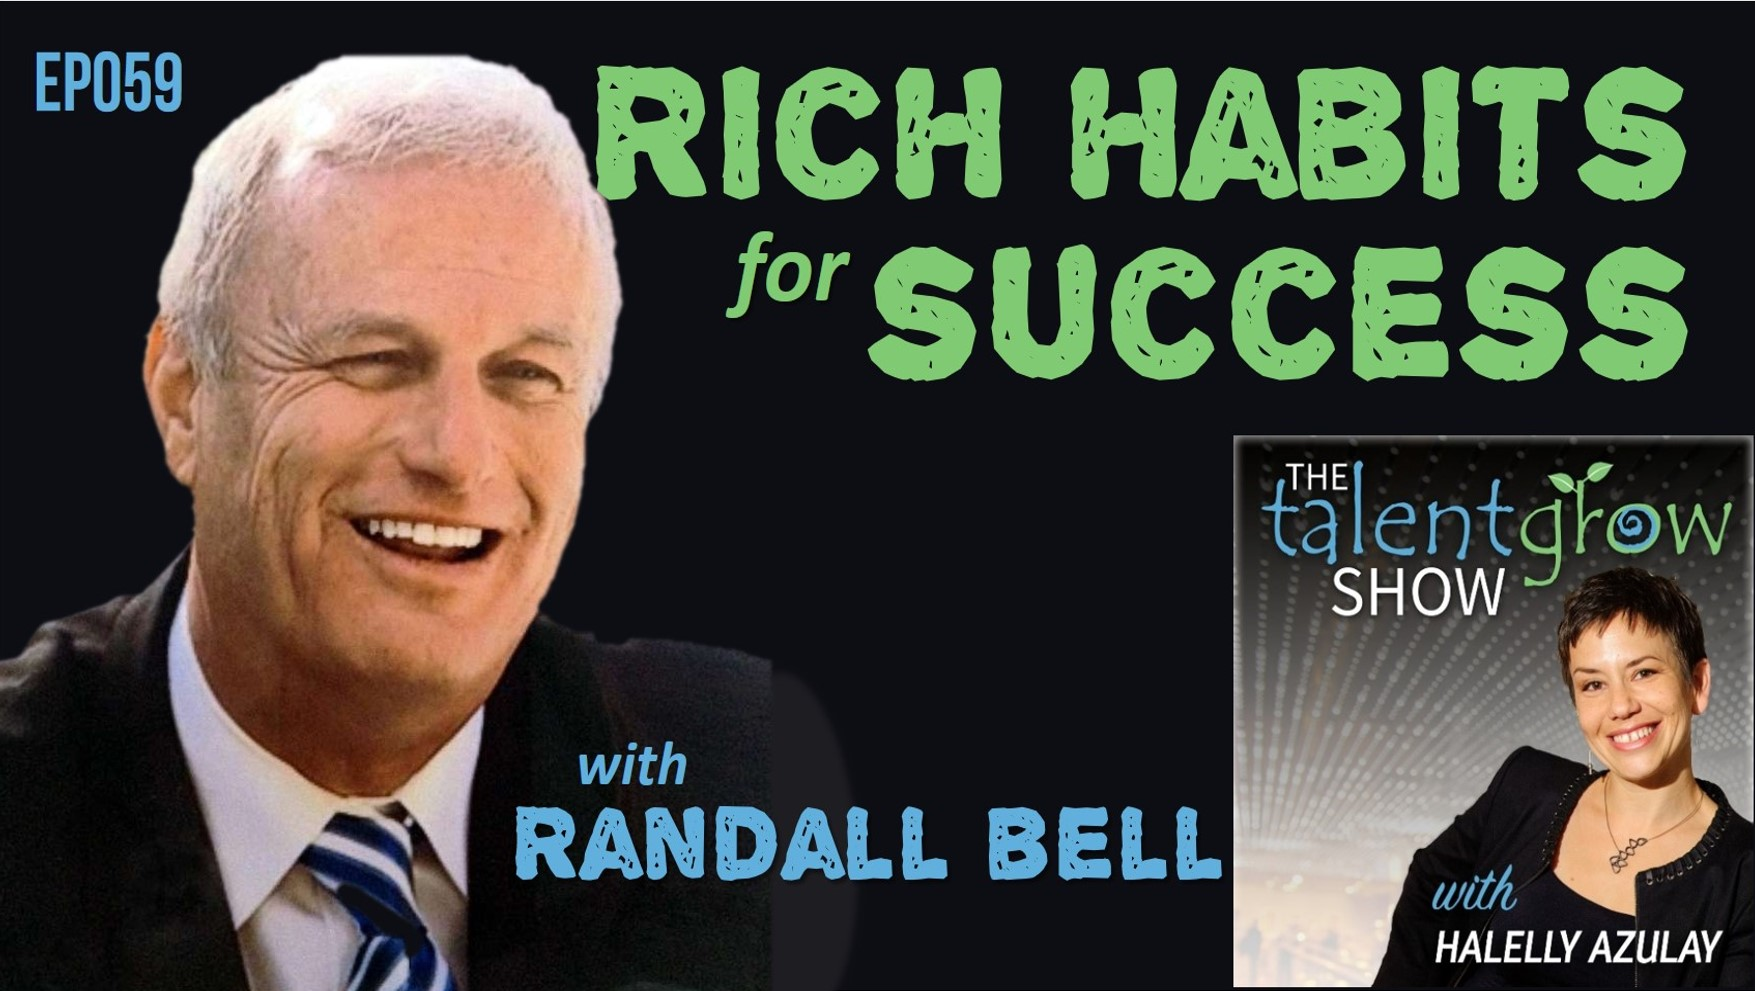 Rich habits for success with Randall Bell on the TalentGrow Show podcast with Halelly Azulay